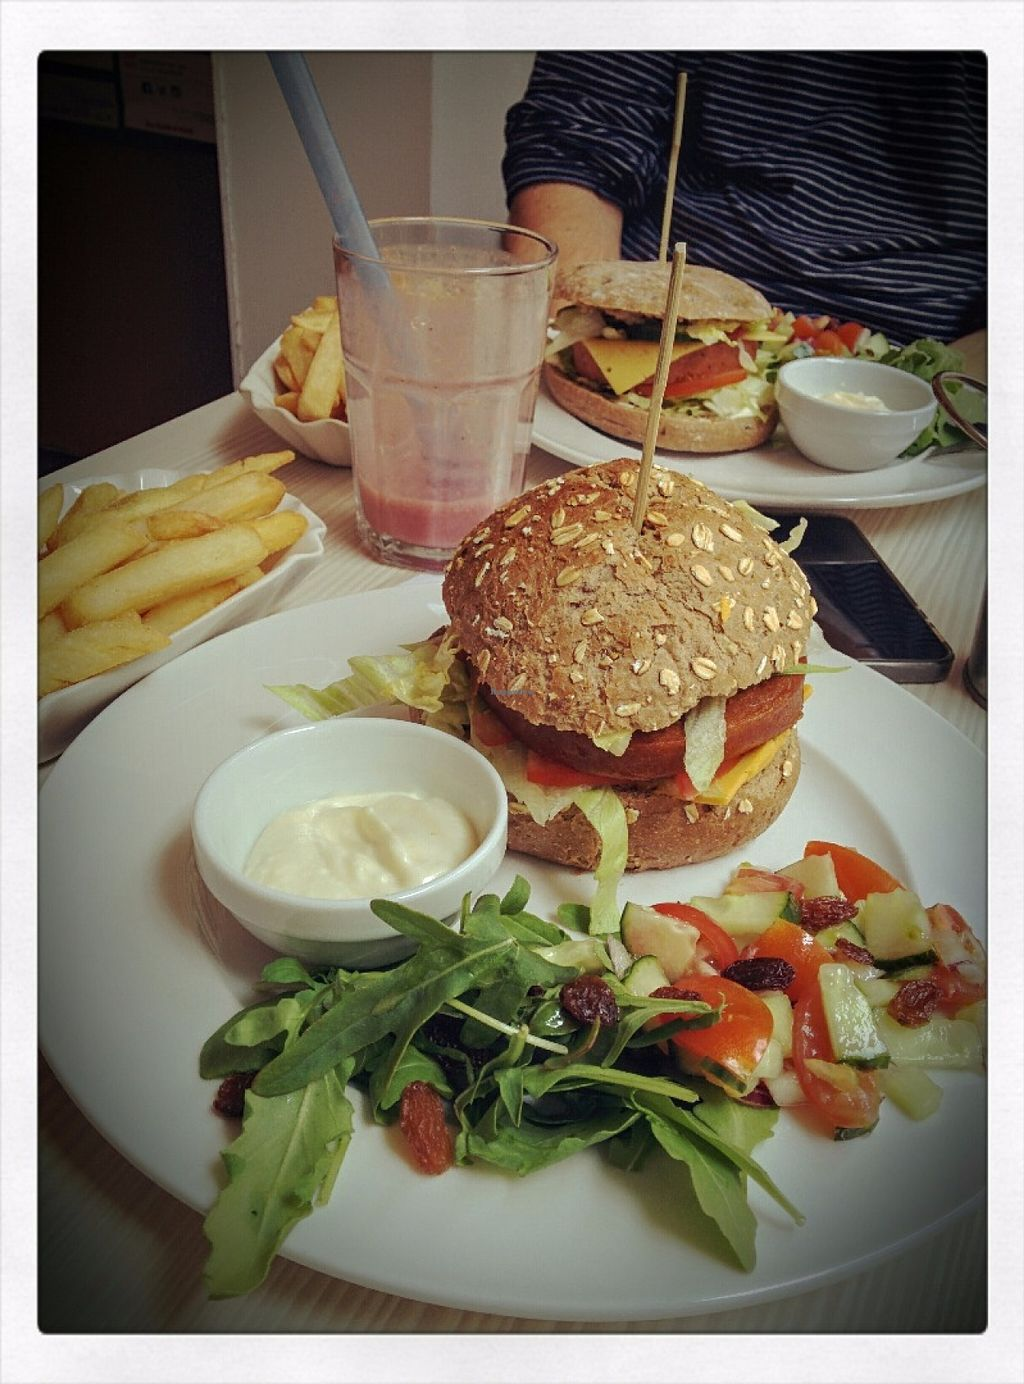 """Photo of Daantje  by <a href=""""/members/profile/Dubi_Hubi"""">Dubi_Hubi</a> <br/>The McCartney XL & The Big BB King burger <br/> June 18, 2016  - <a href='/contact/abuse/image/58152/154701'>Report</a>"""